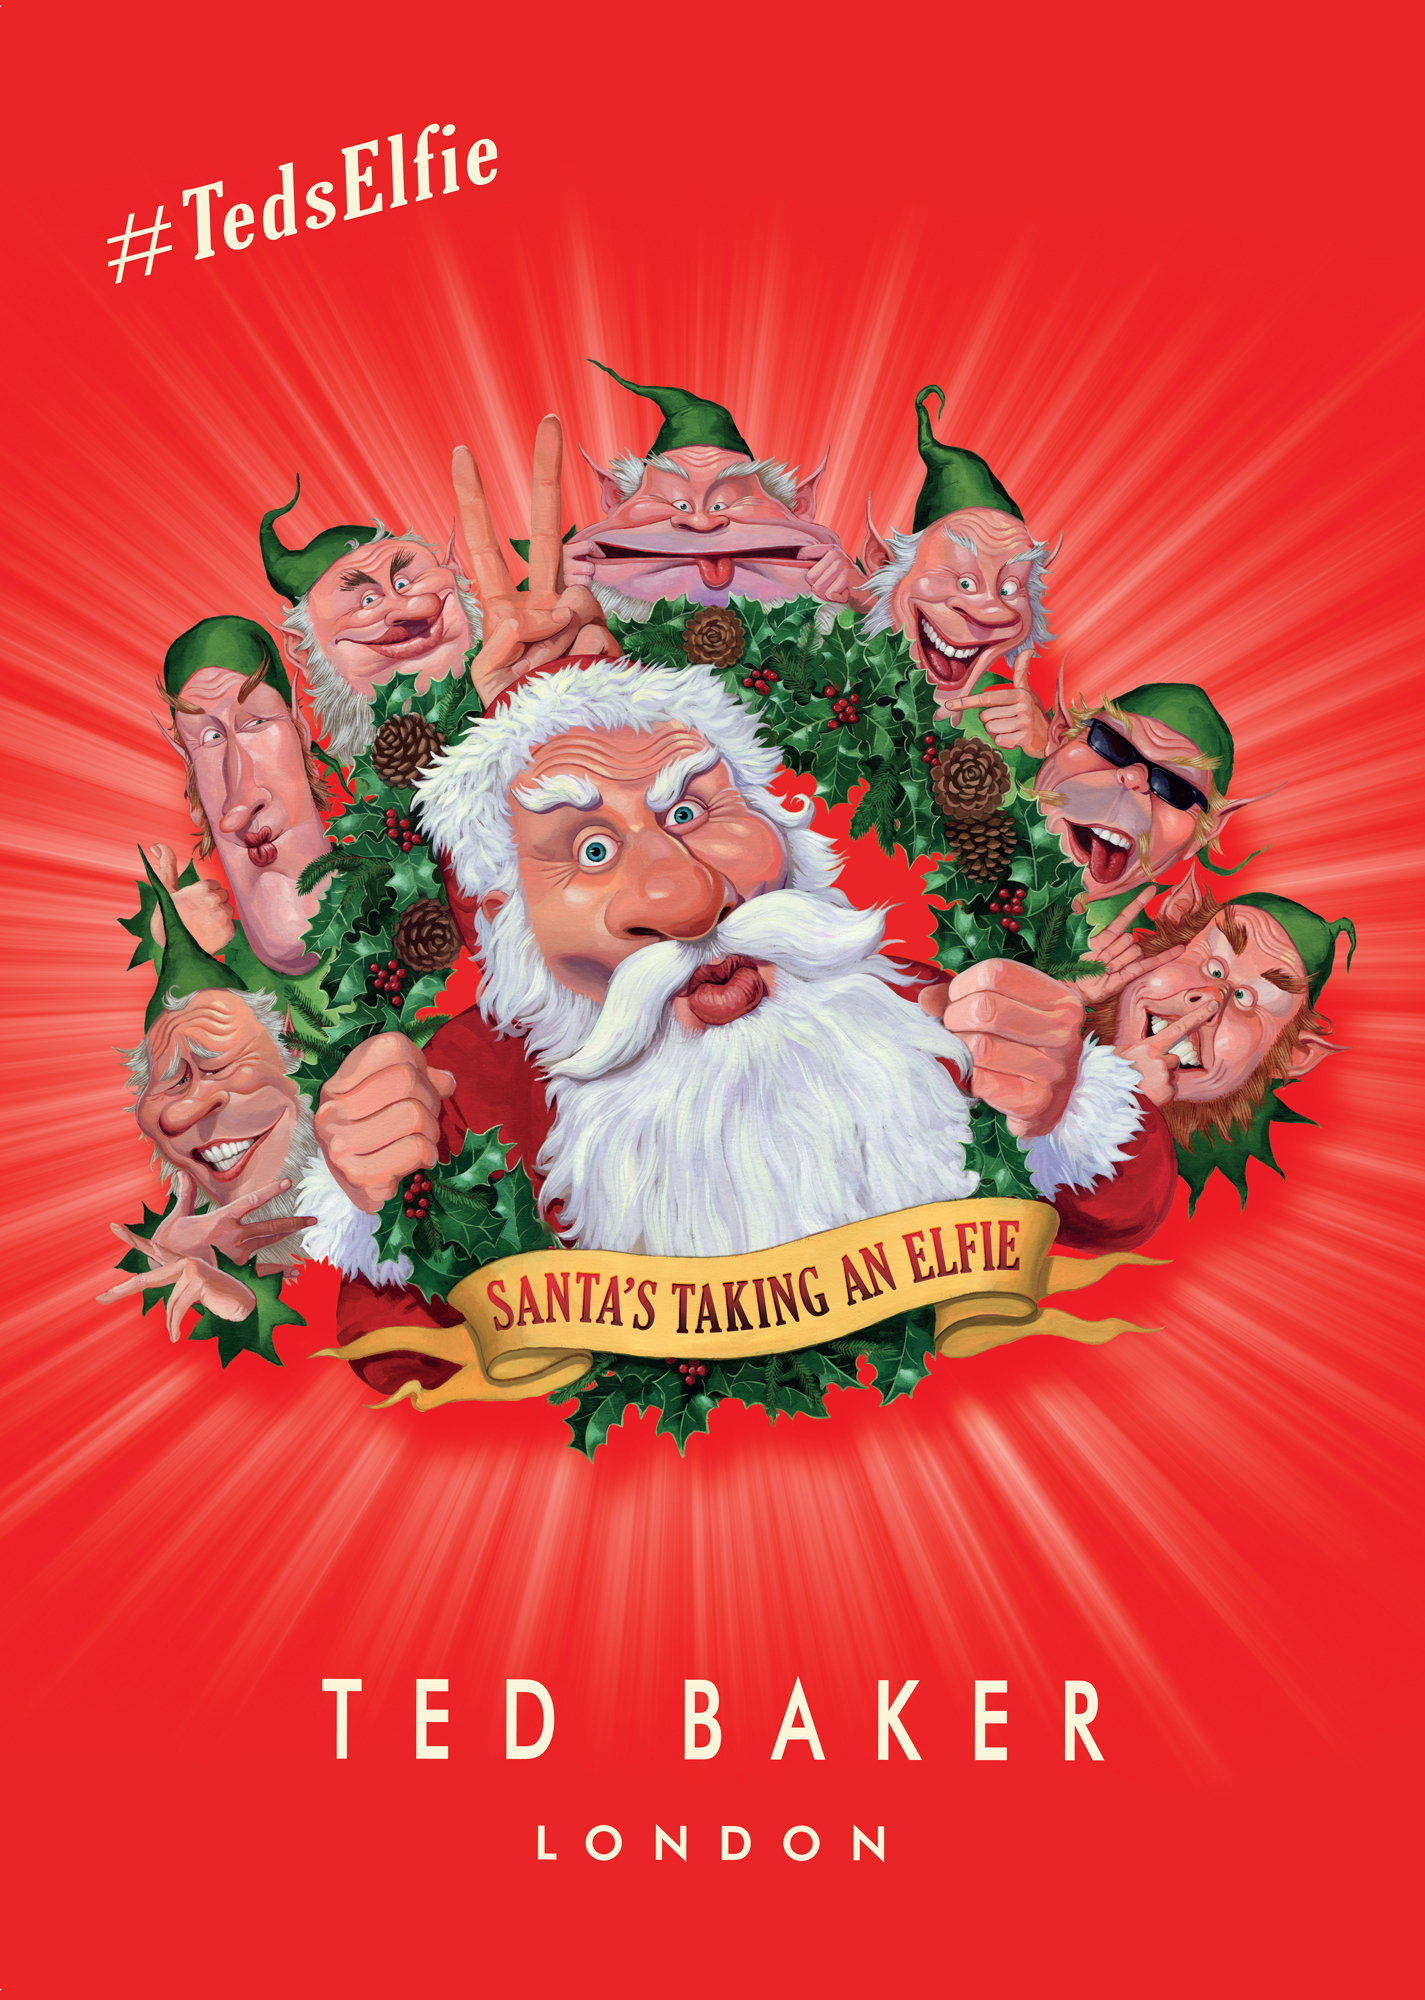 Jon Berkeley - for Ted Baker's Xmas in-store campaign